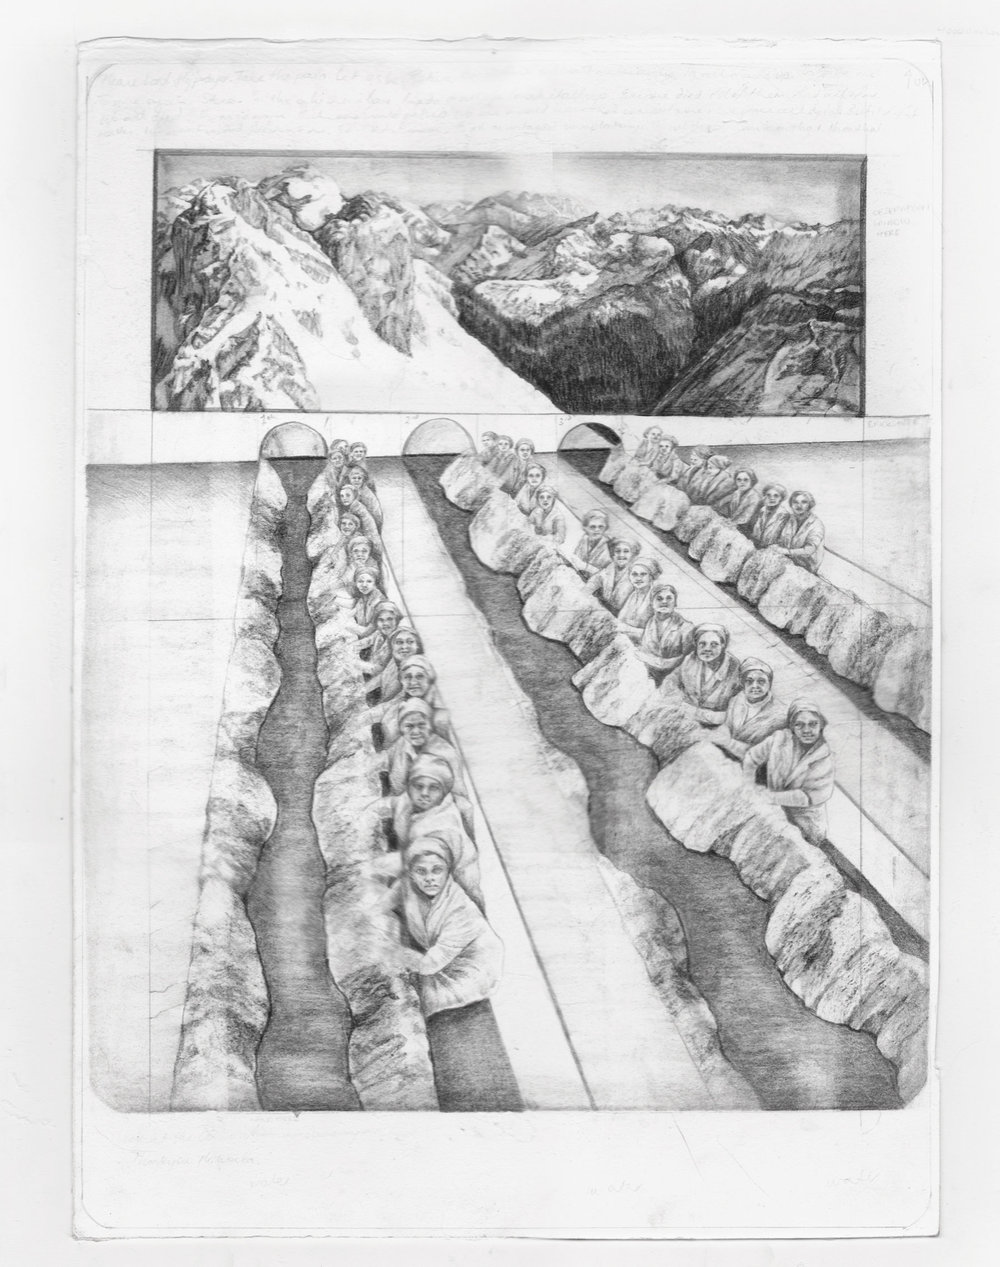 'View from the Observation Room' - graphite and carbon pencil on layered watercolour paper, 41x55cm, 2012